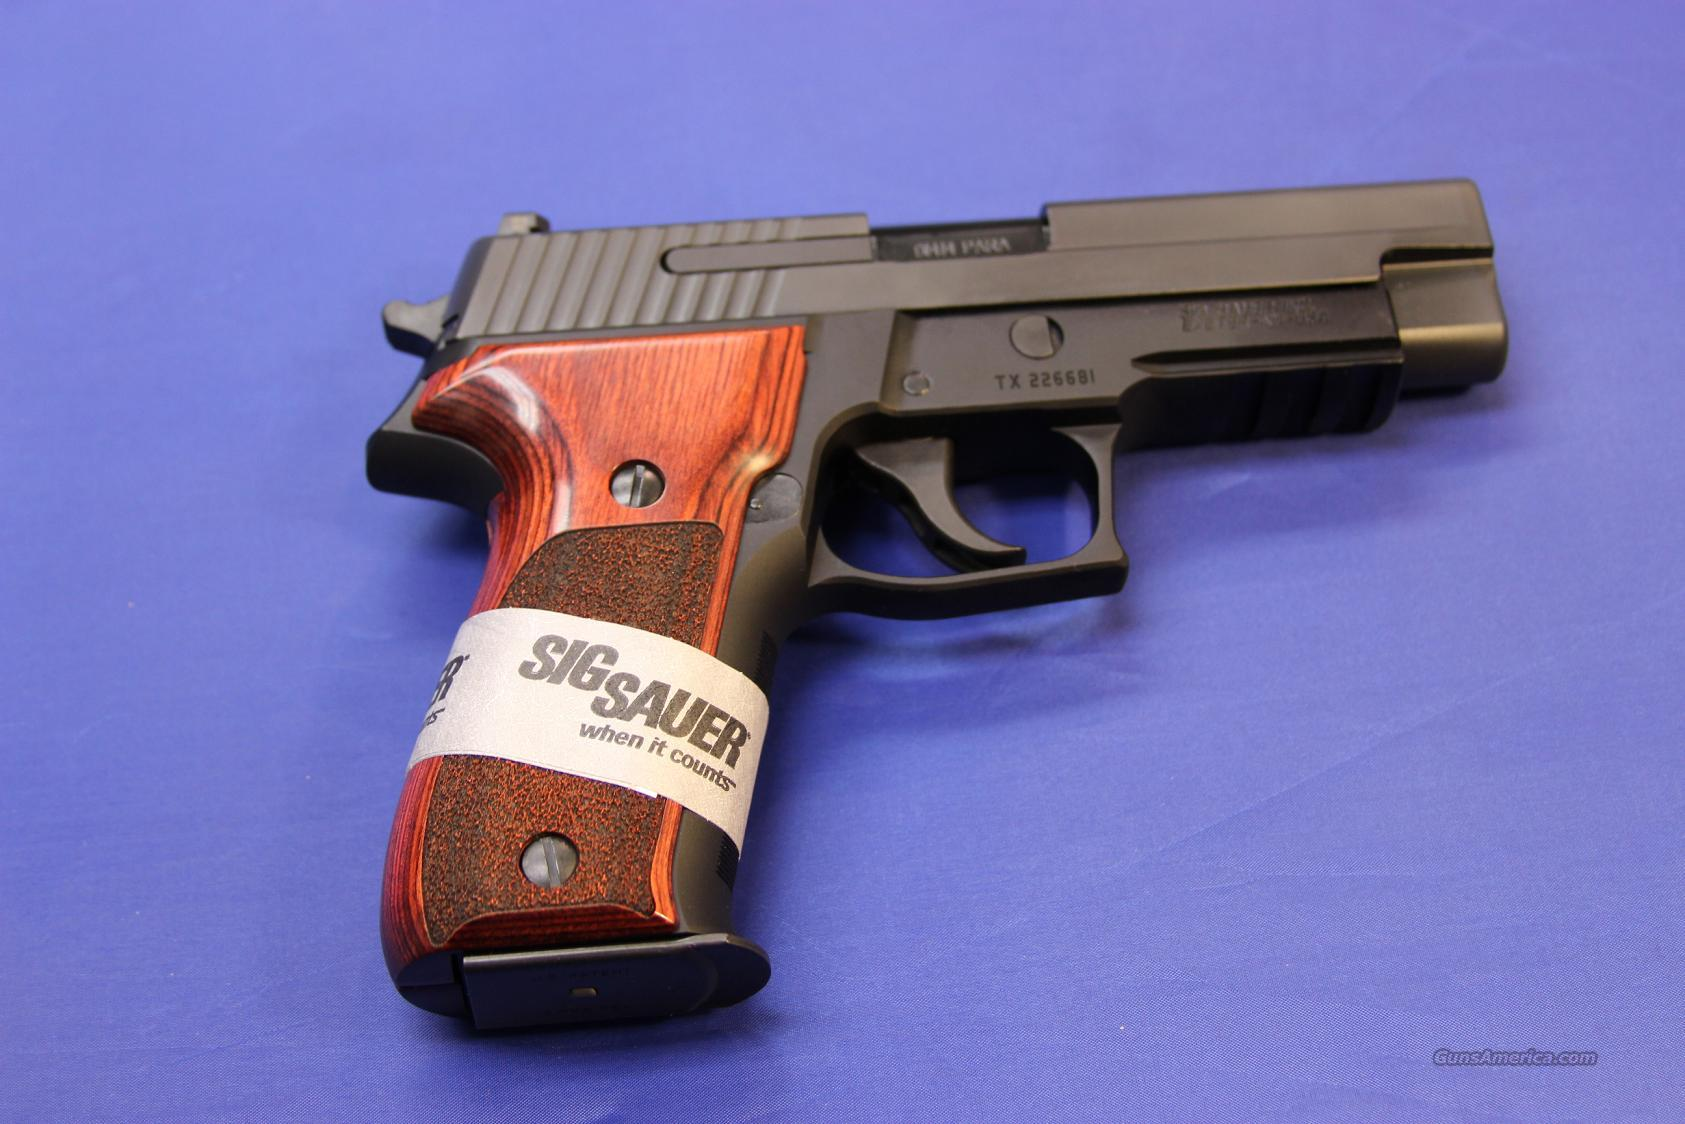 ***SOLD*** SIG SAUER P226 TEXAS EDITION 9MM - NEW!  Guns > Pistols > Sig - Sauer/Sigarms Pistols > P226